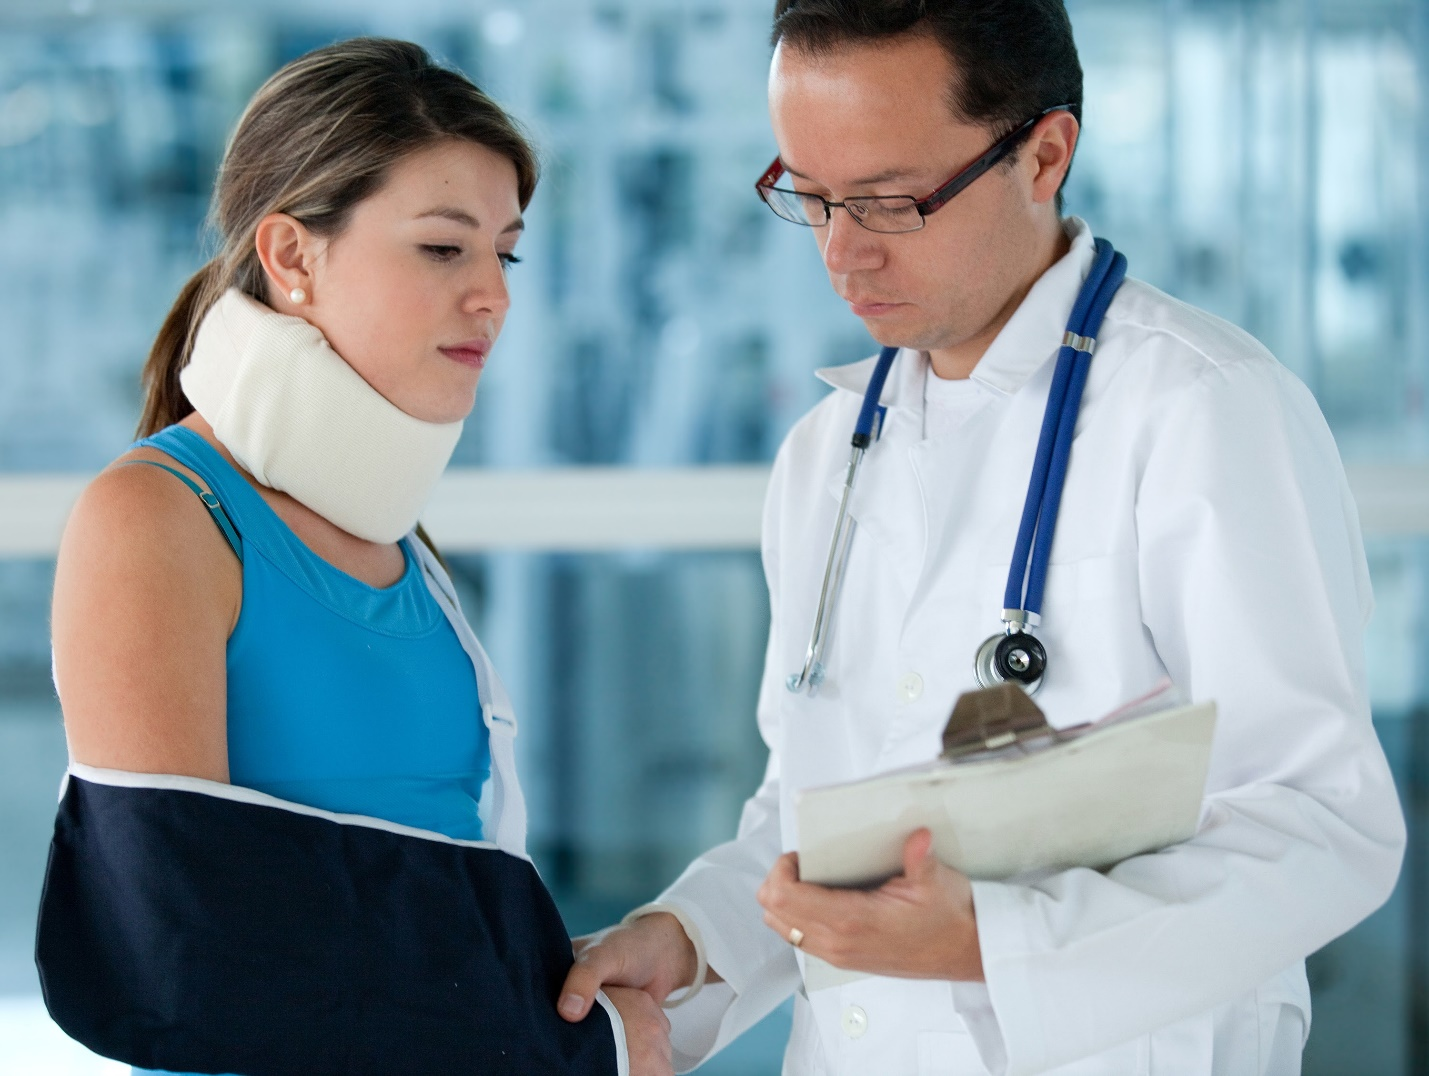 Injury Victim Attorney in Pesos, Texas